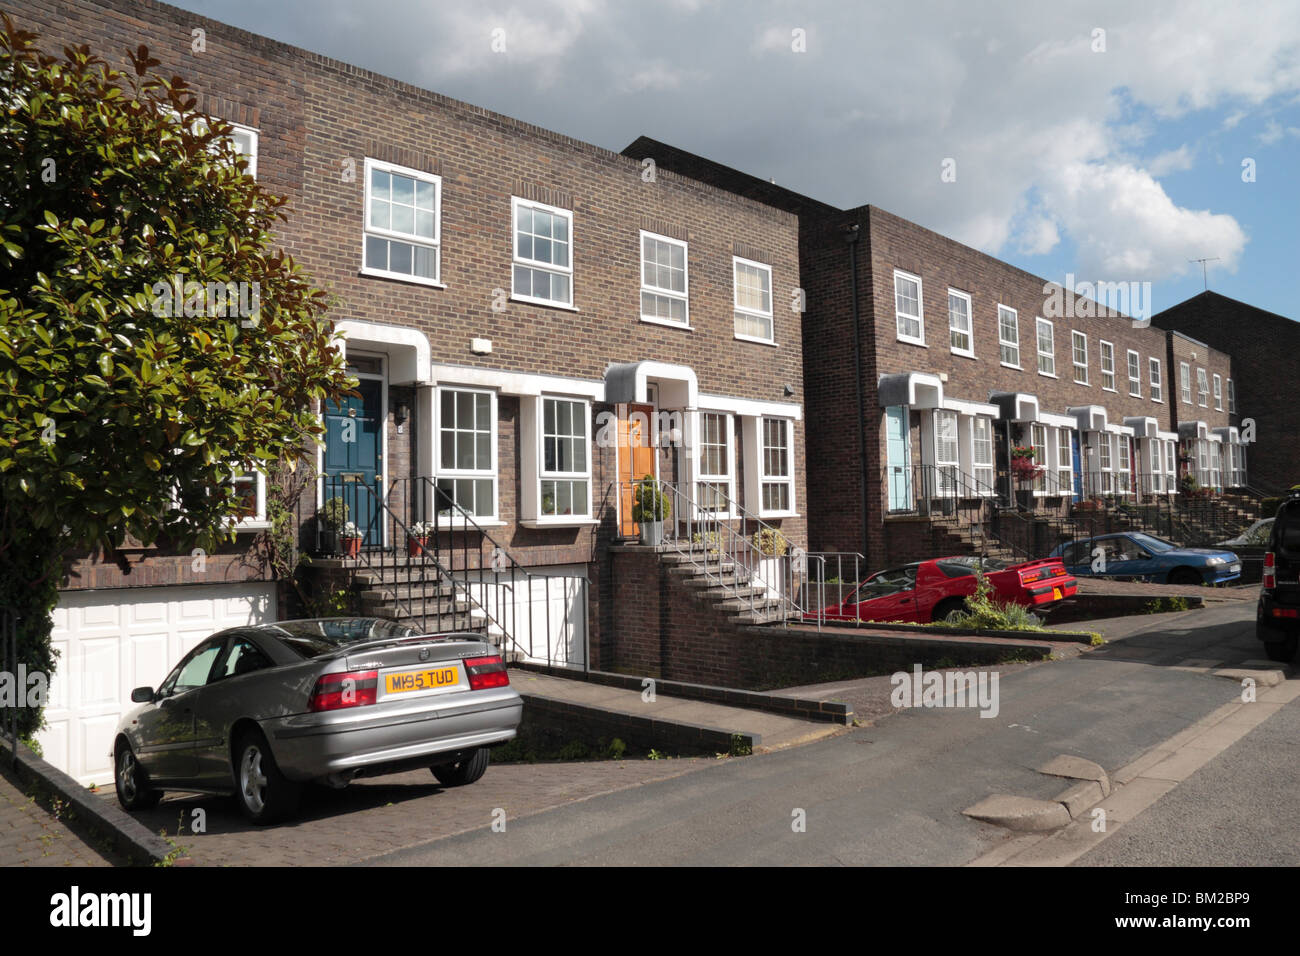 A row of modern terraced townhouse properties on Shaftesbury Way, Twickenham, Middx, UK. May 2010 - Stock Image